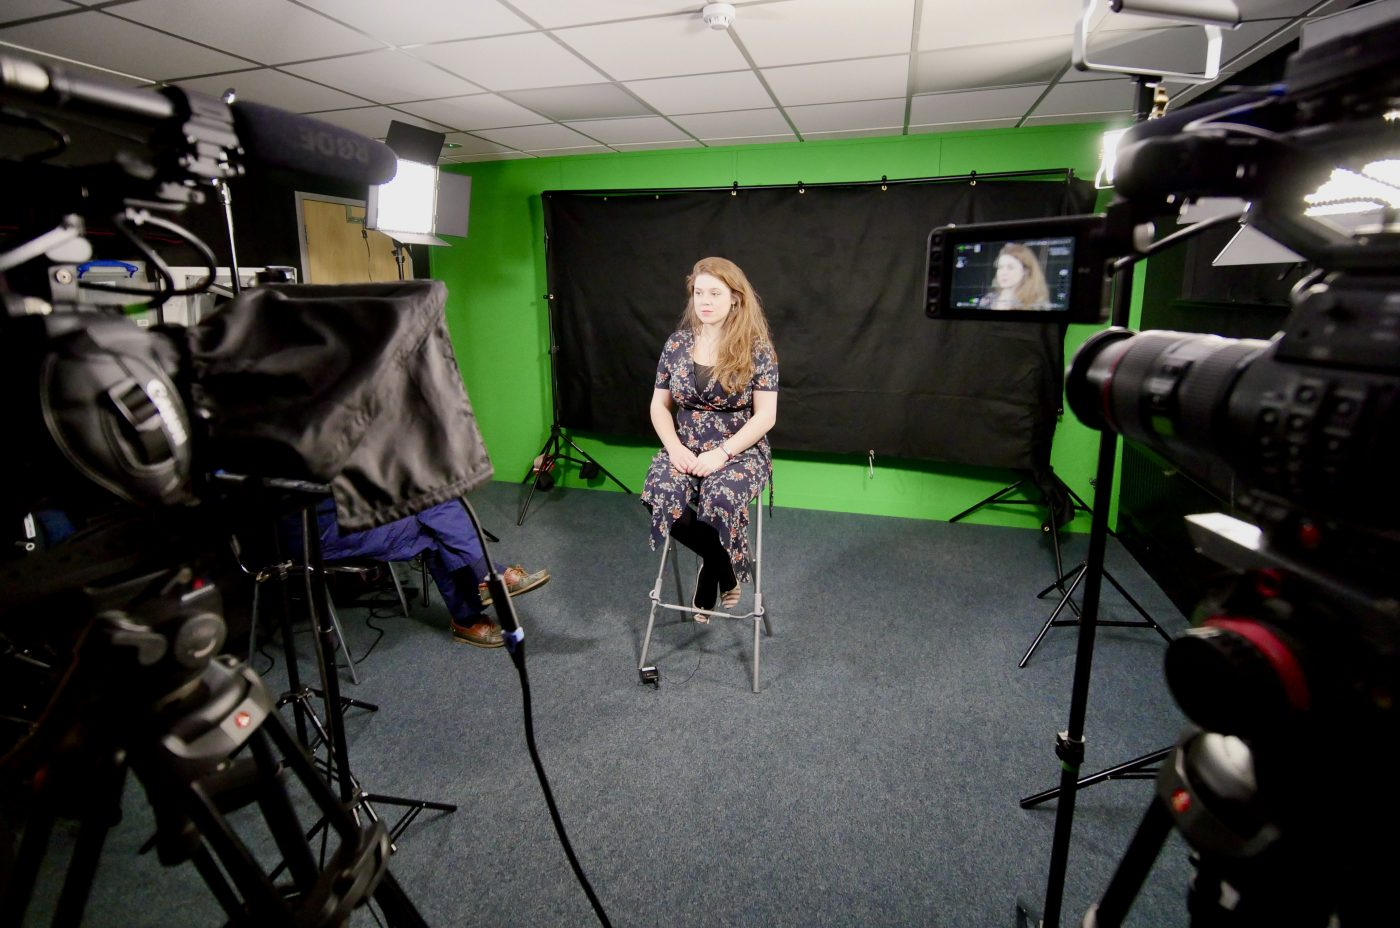 Filming with Family Mental Wealth in our studio. There are two cameras, lights and a backdrop set up.